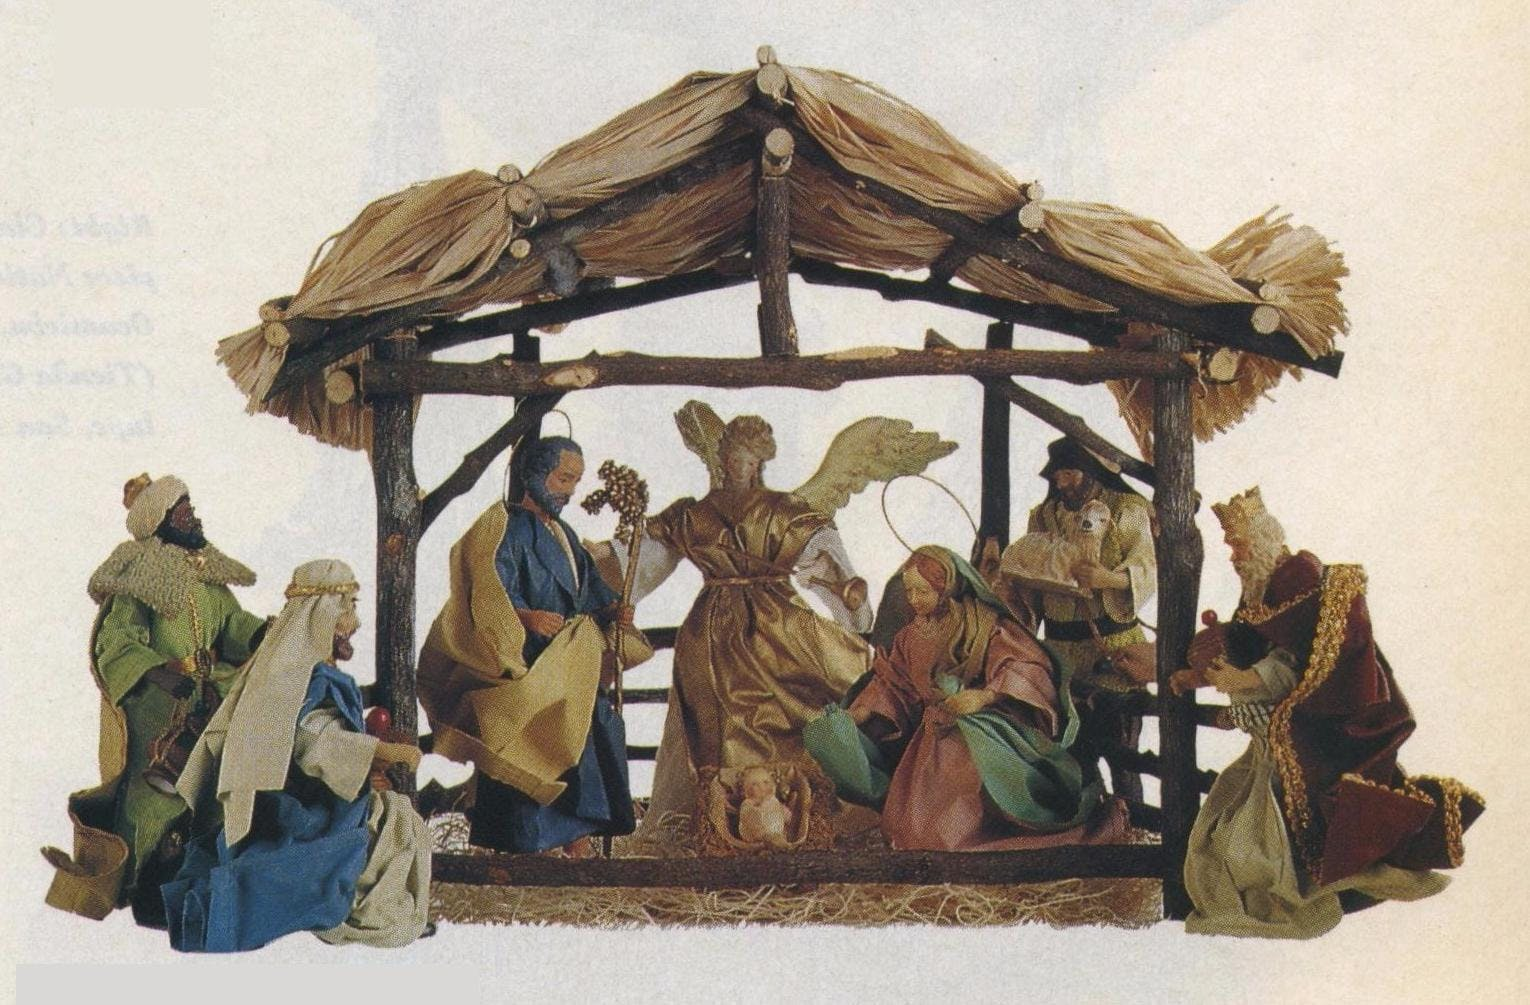 Italian Renaissance knockoff Nativity from Taiwan (Hendley Market).